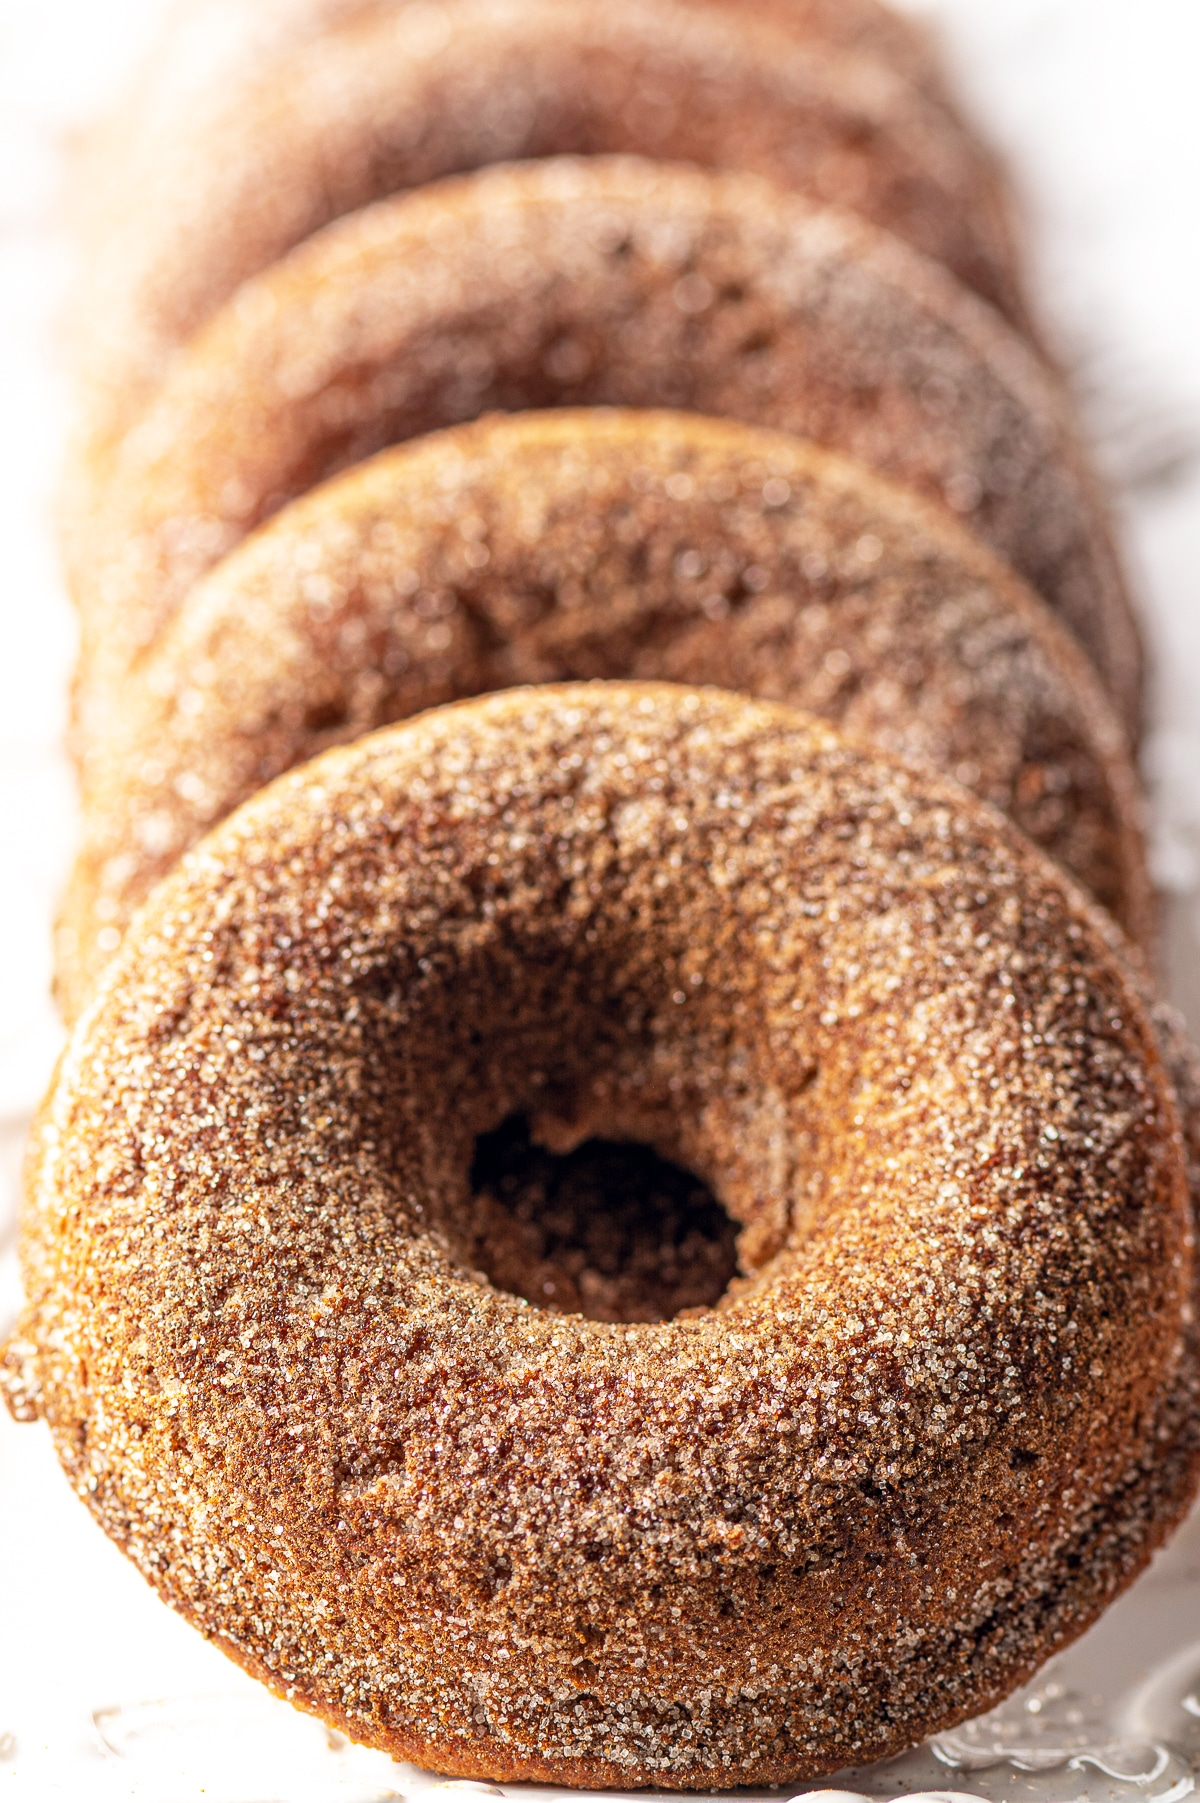 Golden baked cinnamon and Allulose coated donuts resting on a white plate